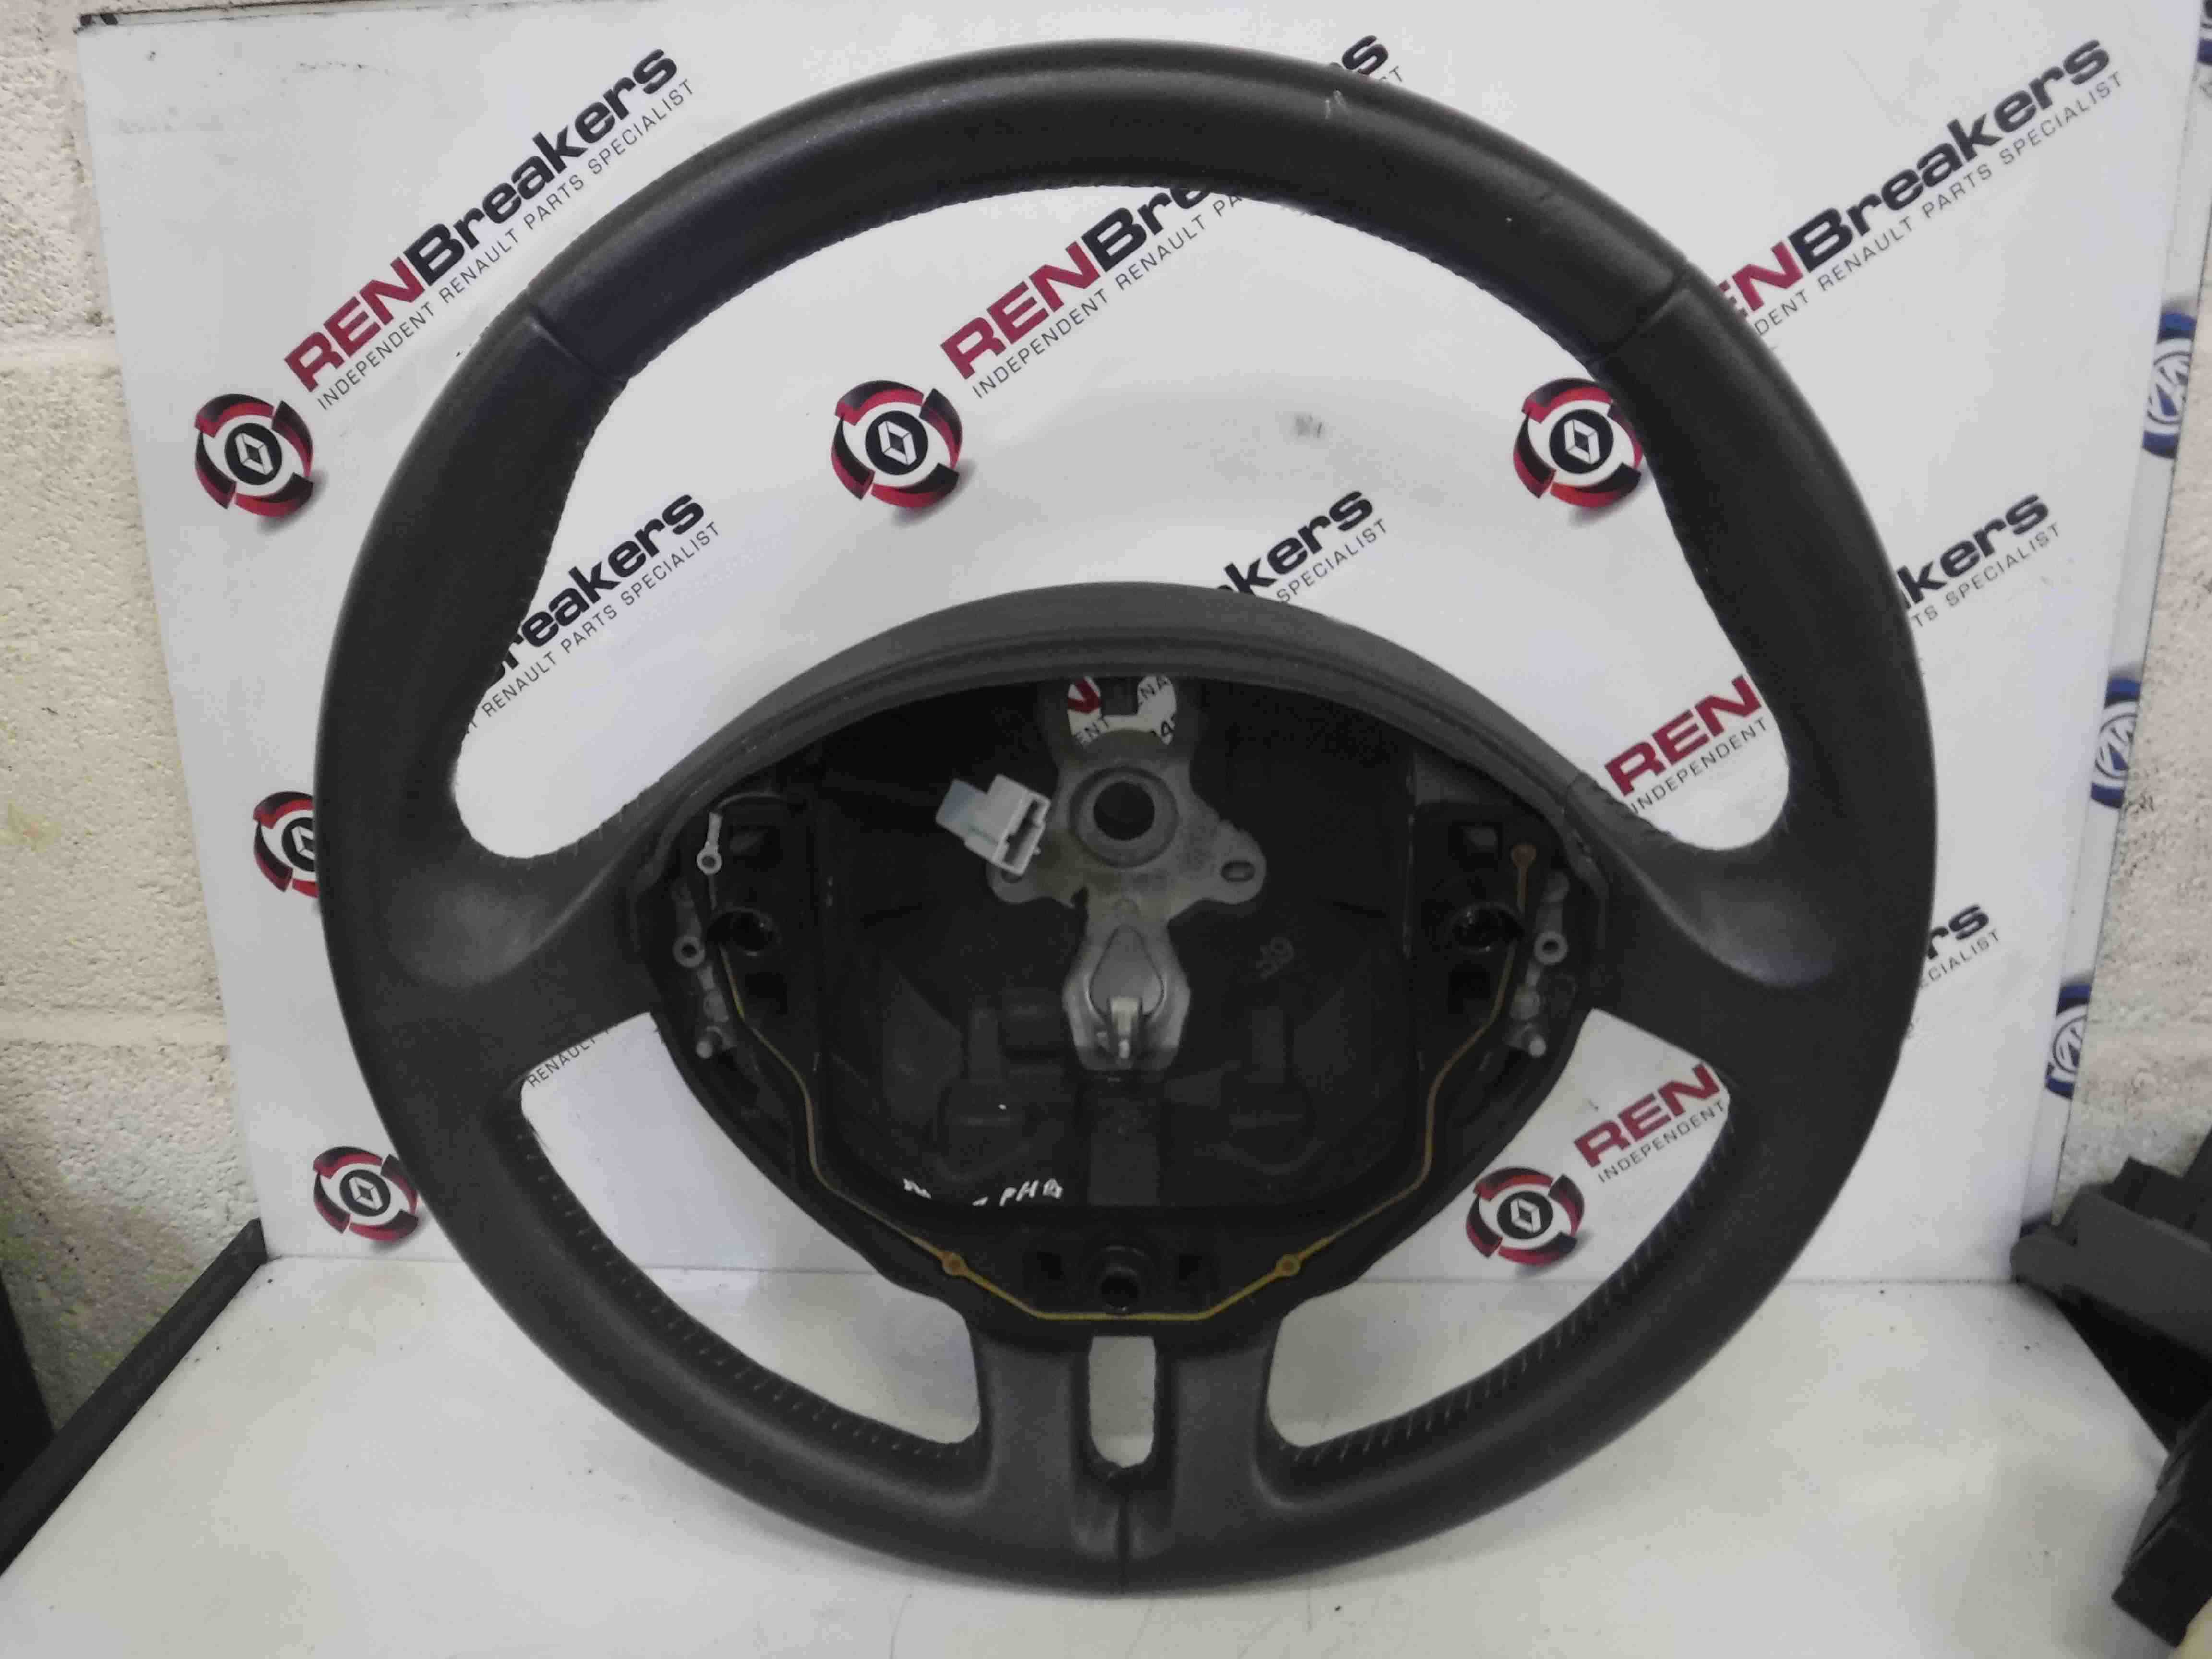 Renault Clio MK3 2005-2012 Steering Wheel Leather With Stitching 8200344077